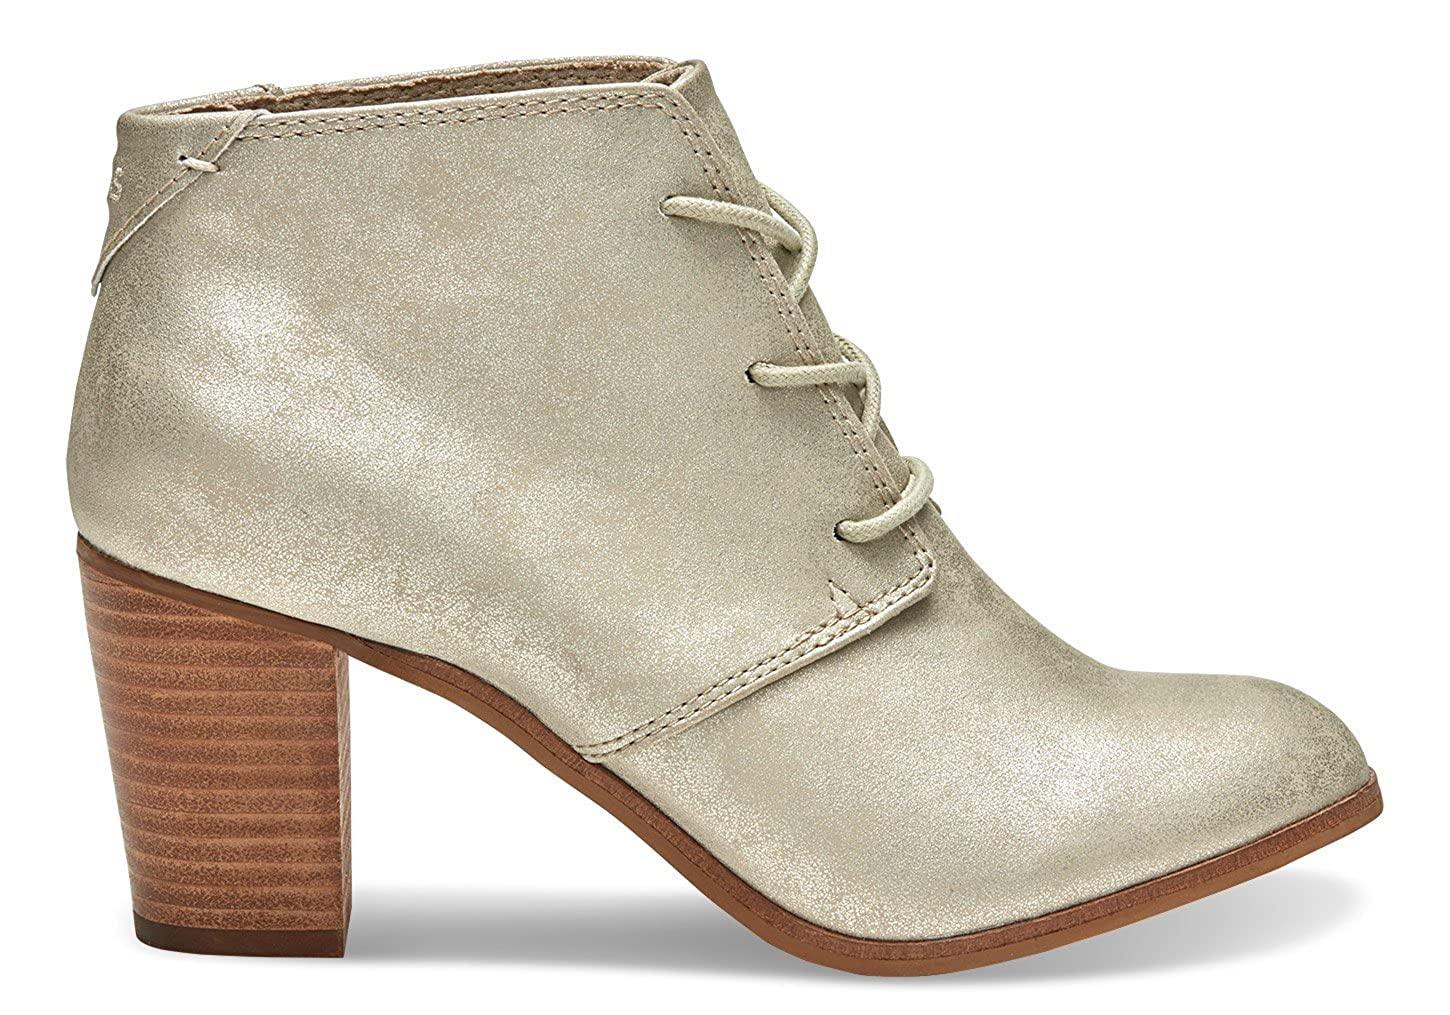 e7b1f60ad TOMS Women's Lunata Lace-Up Booties (10.0 B(M) US Womens, White Gold  Metallic Synthetic Leather): Amazon.ca: Shoes & Handbags